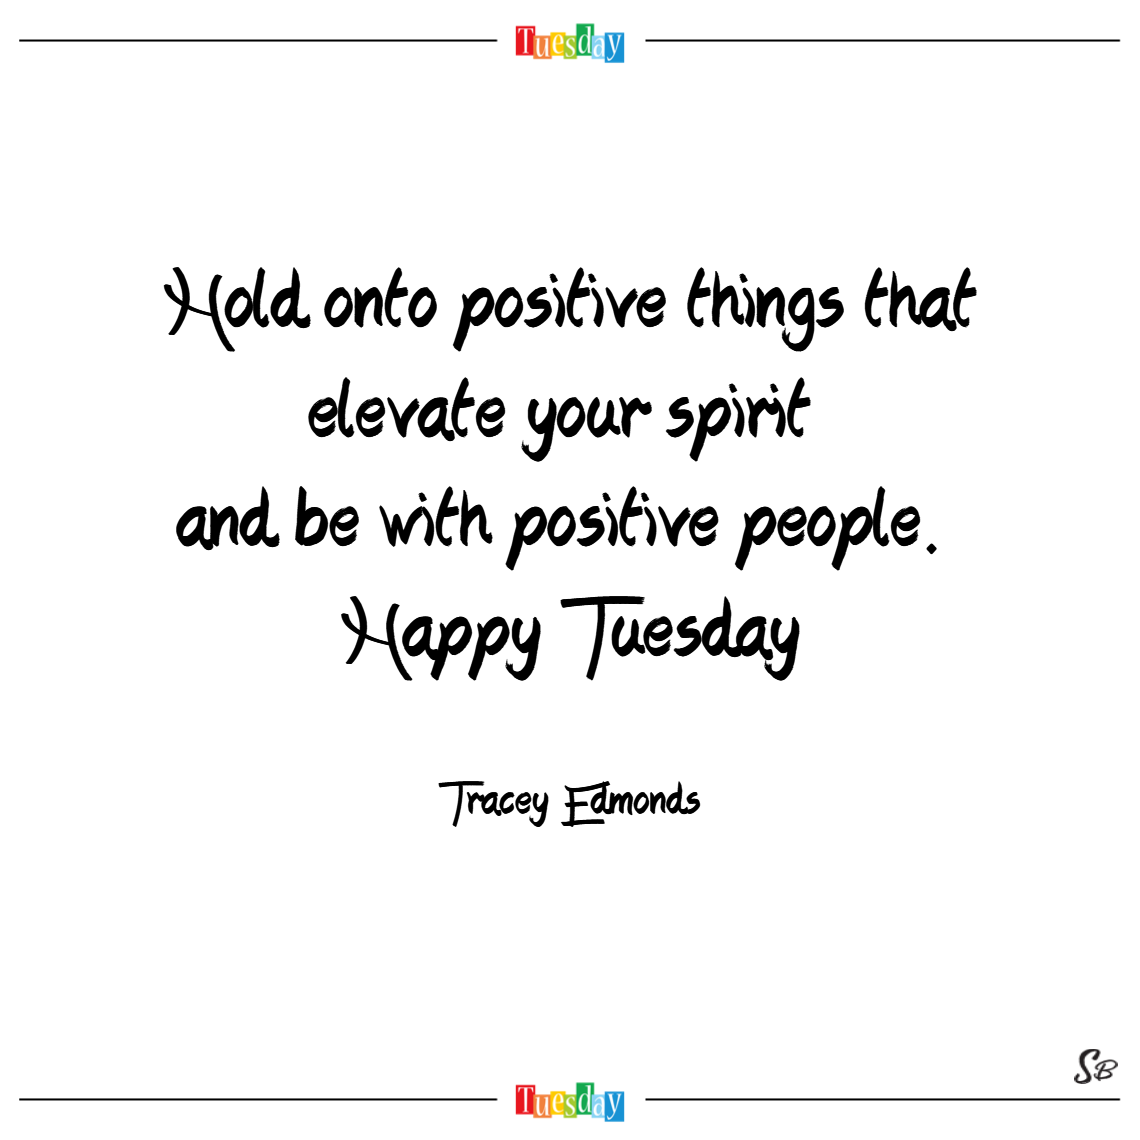 Hold onto positive things that elevate your spirit and be with positive people. happy tuesday.